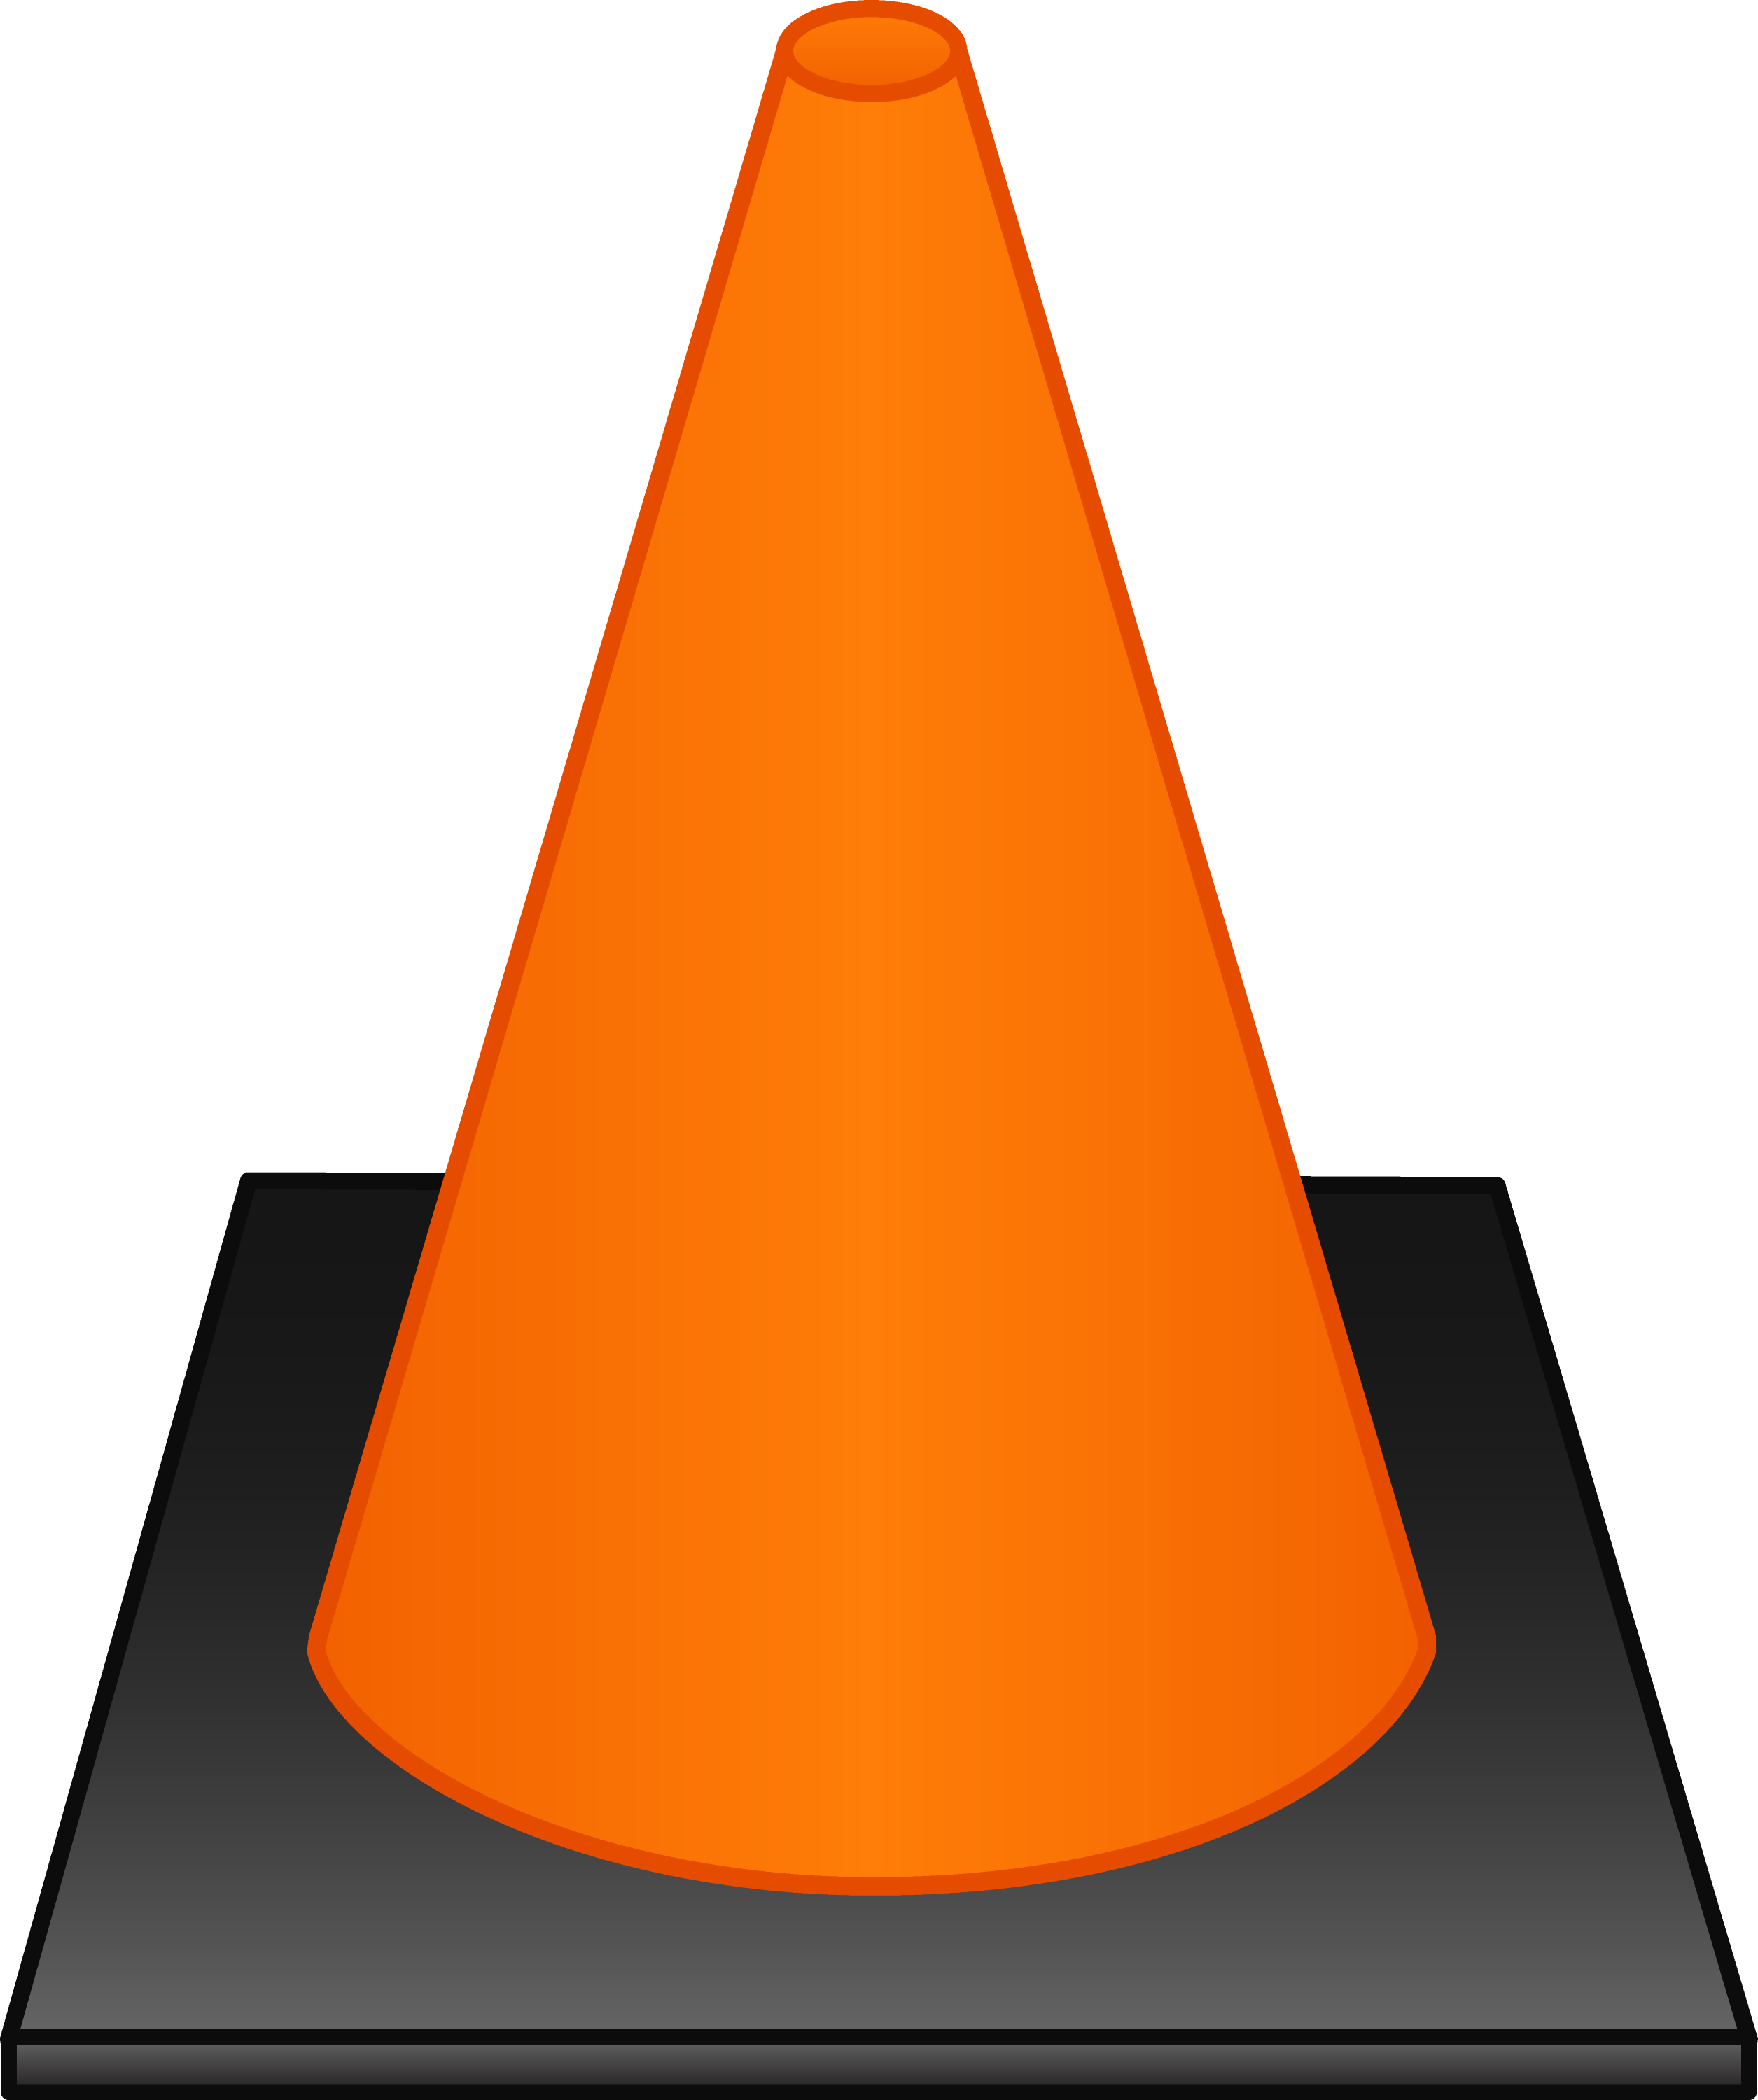 Orange Traffic Cone  Free Clip Art